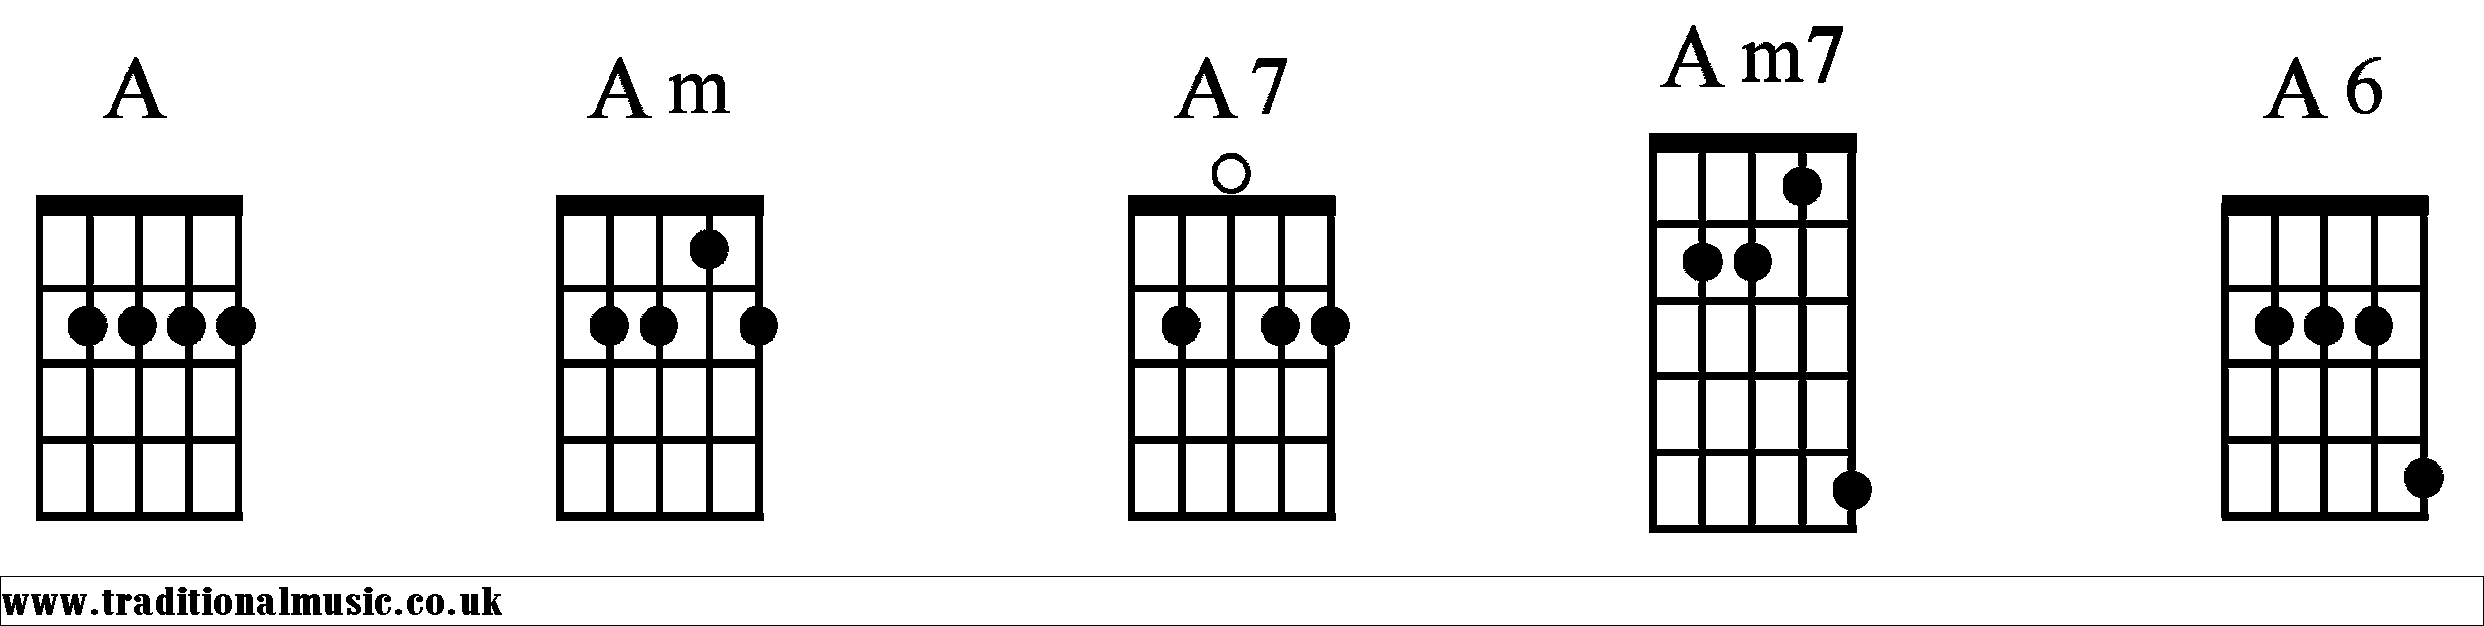 A Chords diagrams Banjo 1